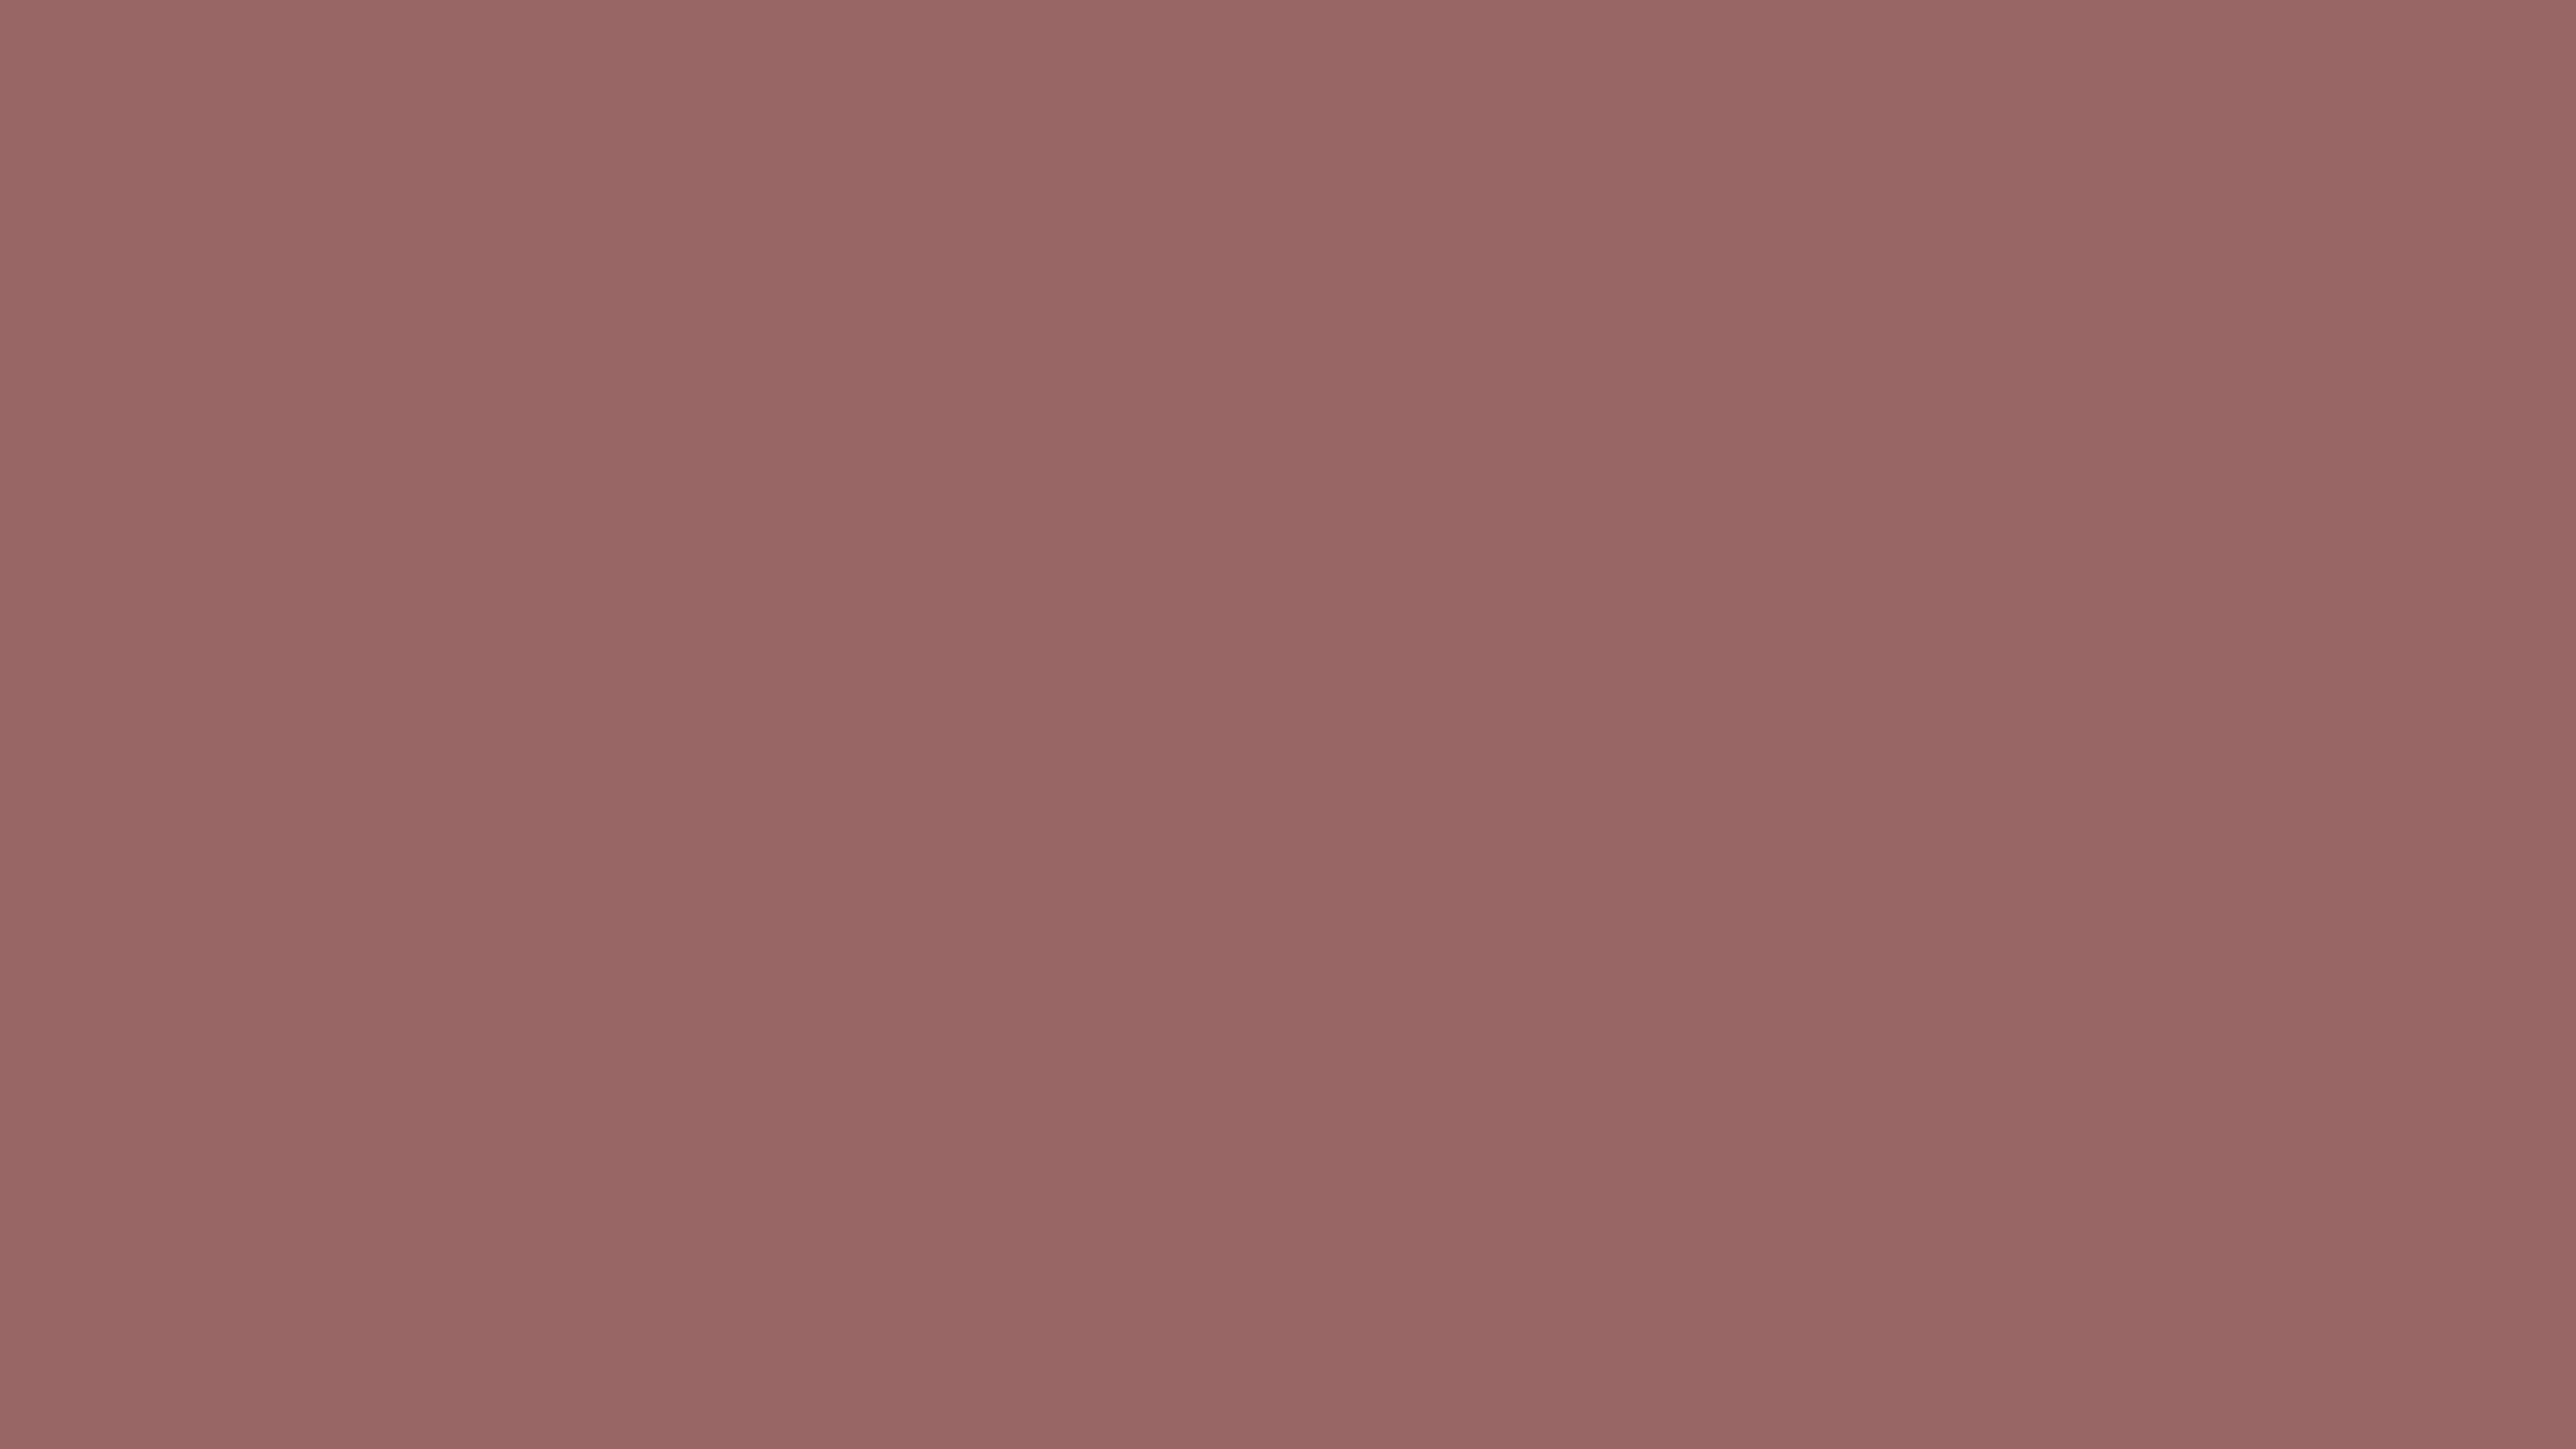 5120x2880 Copper Rose Solid Color Background